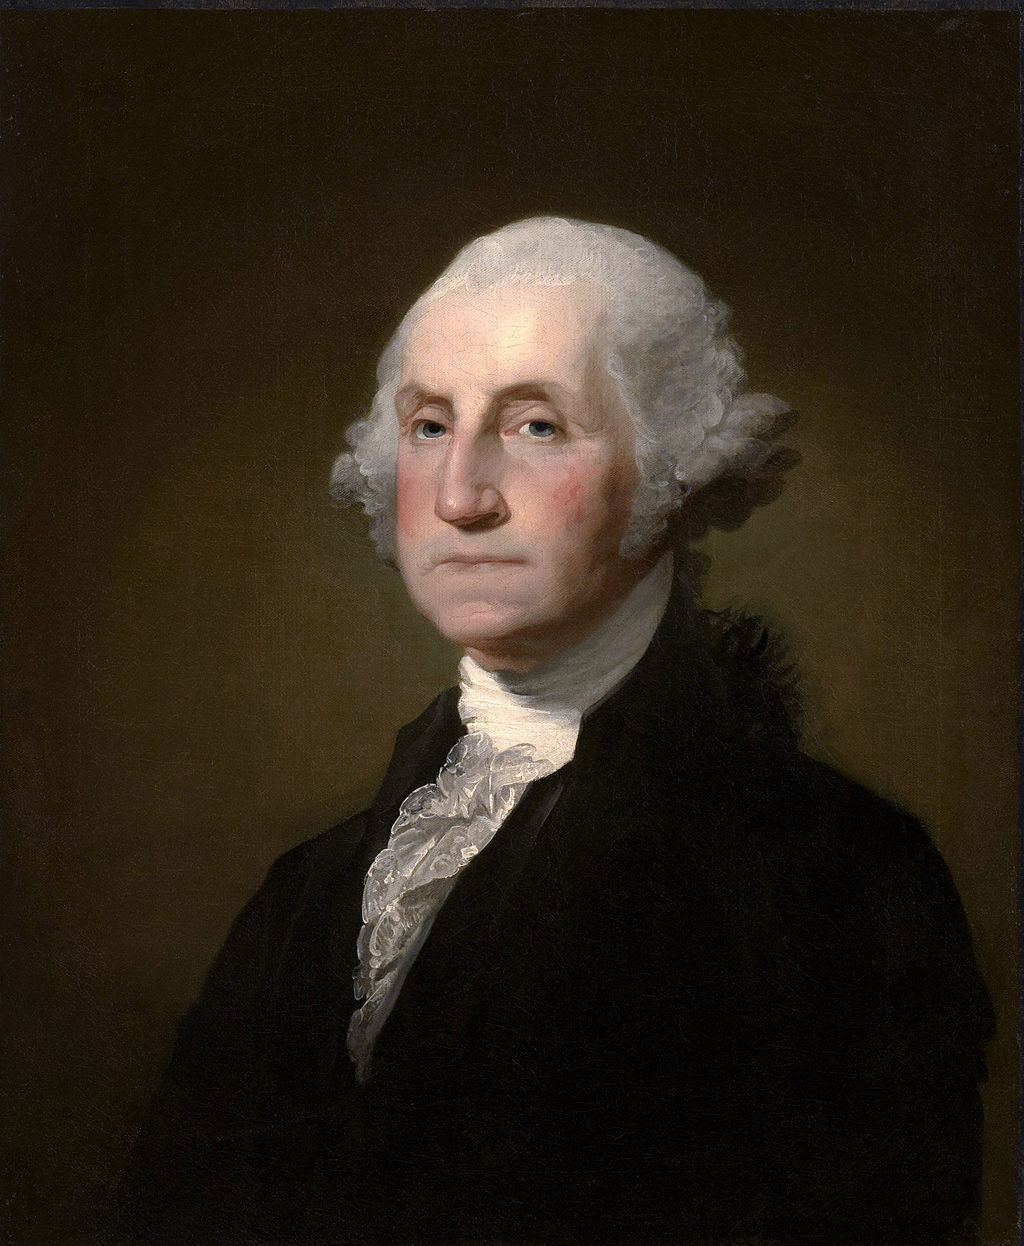 A portrait of George Washington by Gilbert Stuart, 1797.